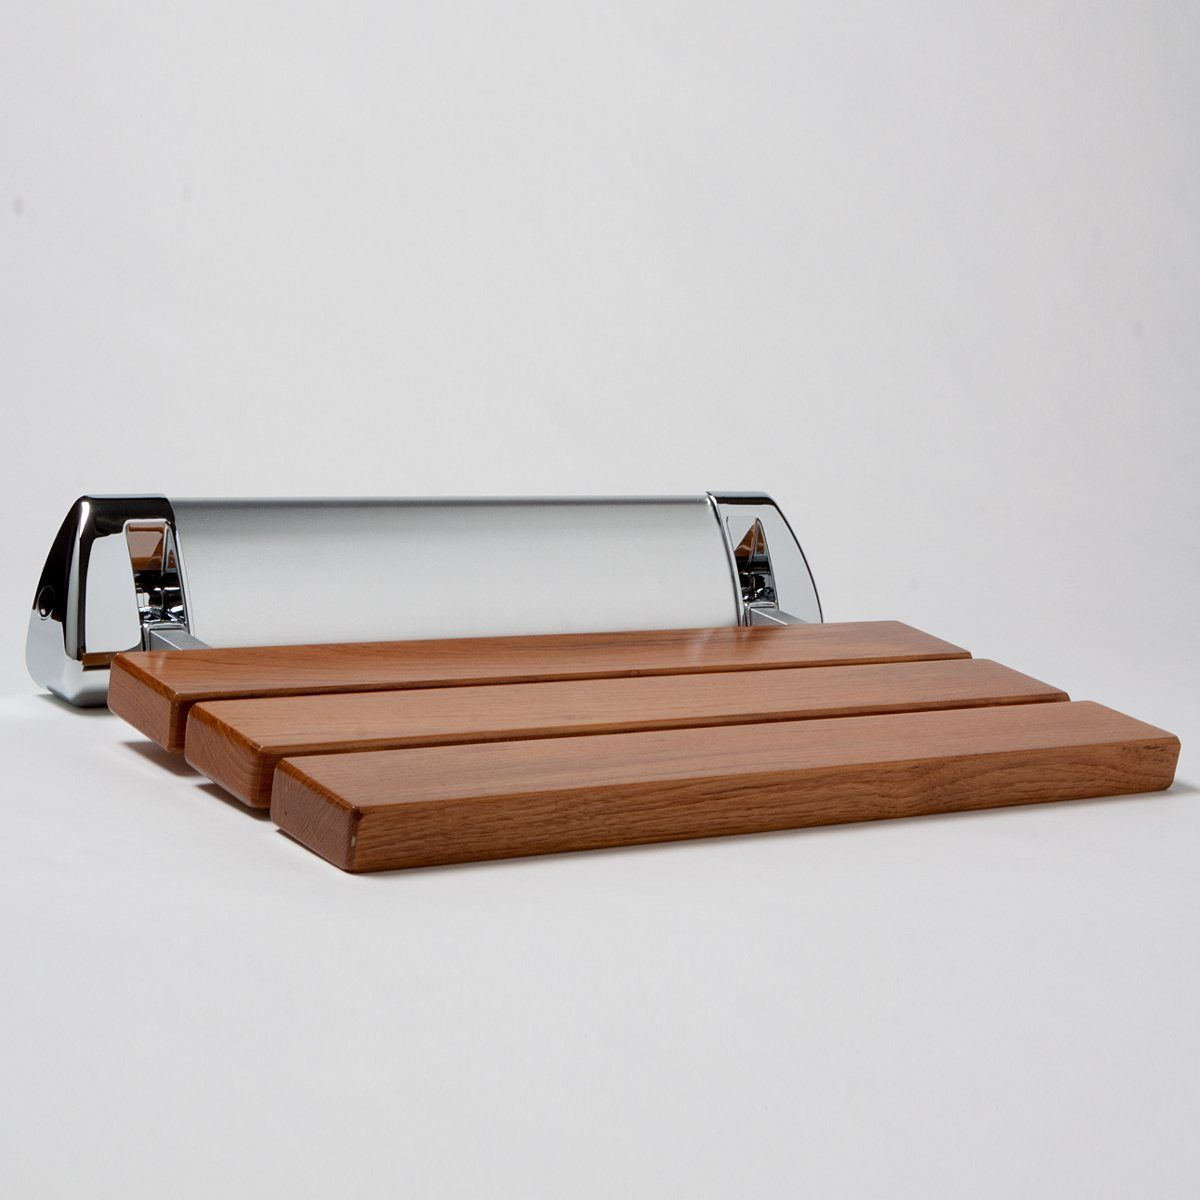 Shop Amerec Steam 9270-029 Shower Seat, Teak at ATG Stores. Browse ...